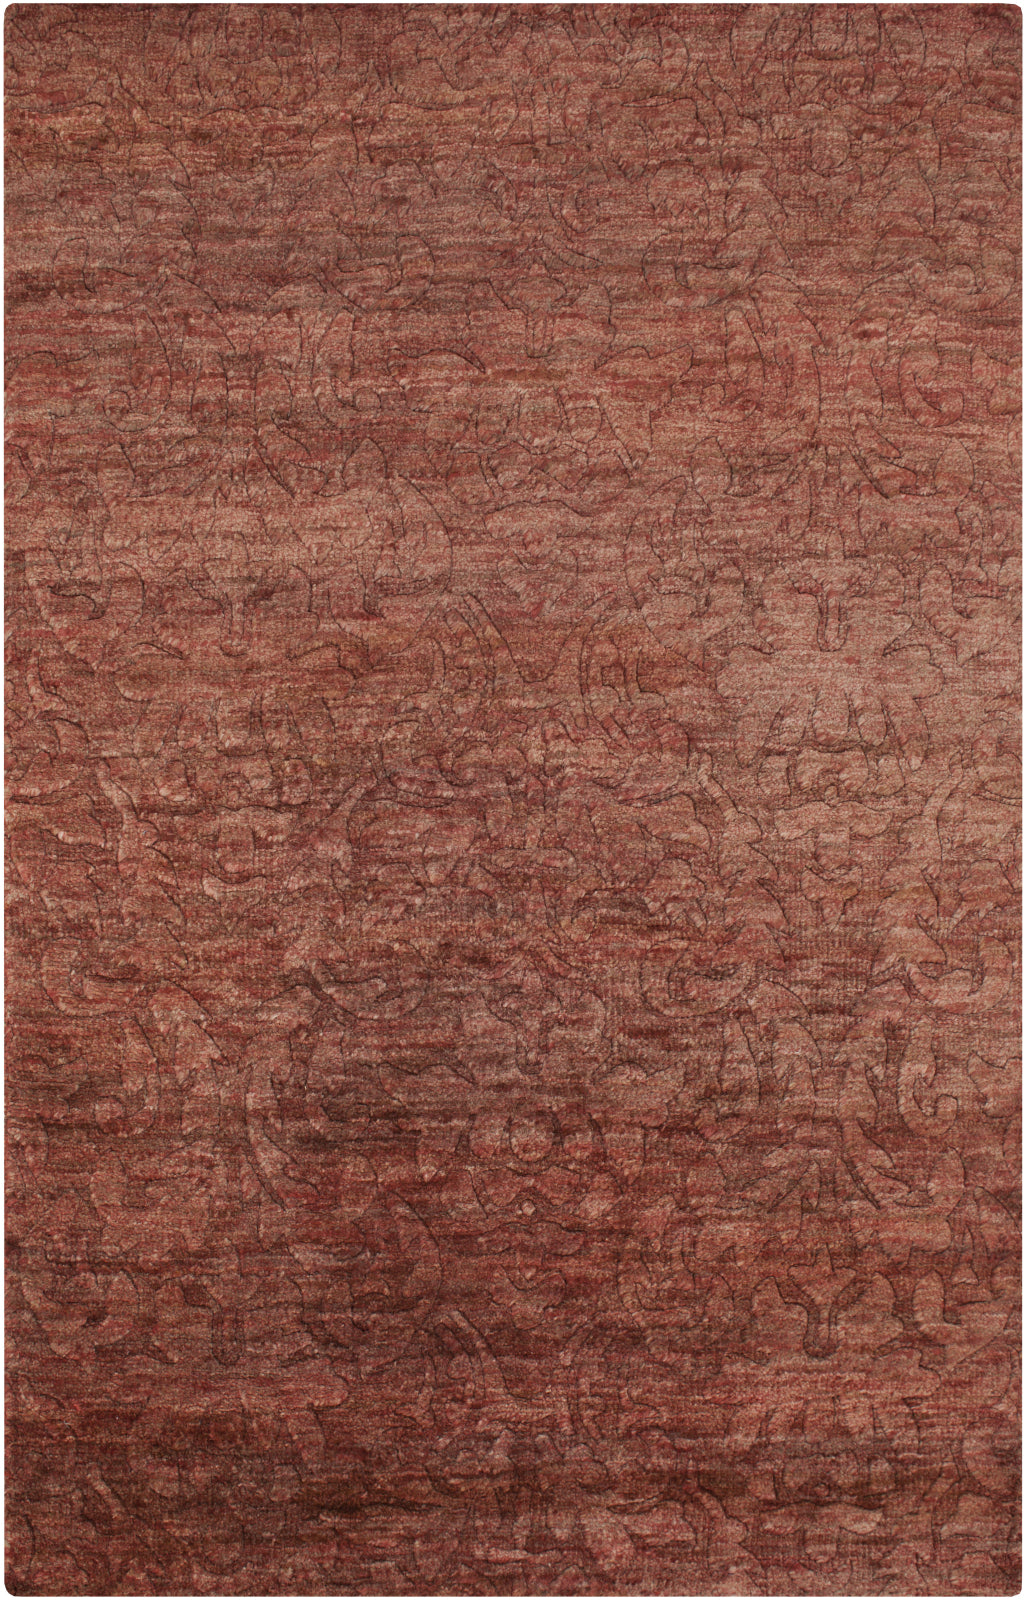 Surya Galloway GLO-1002 Area Rug main image